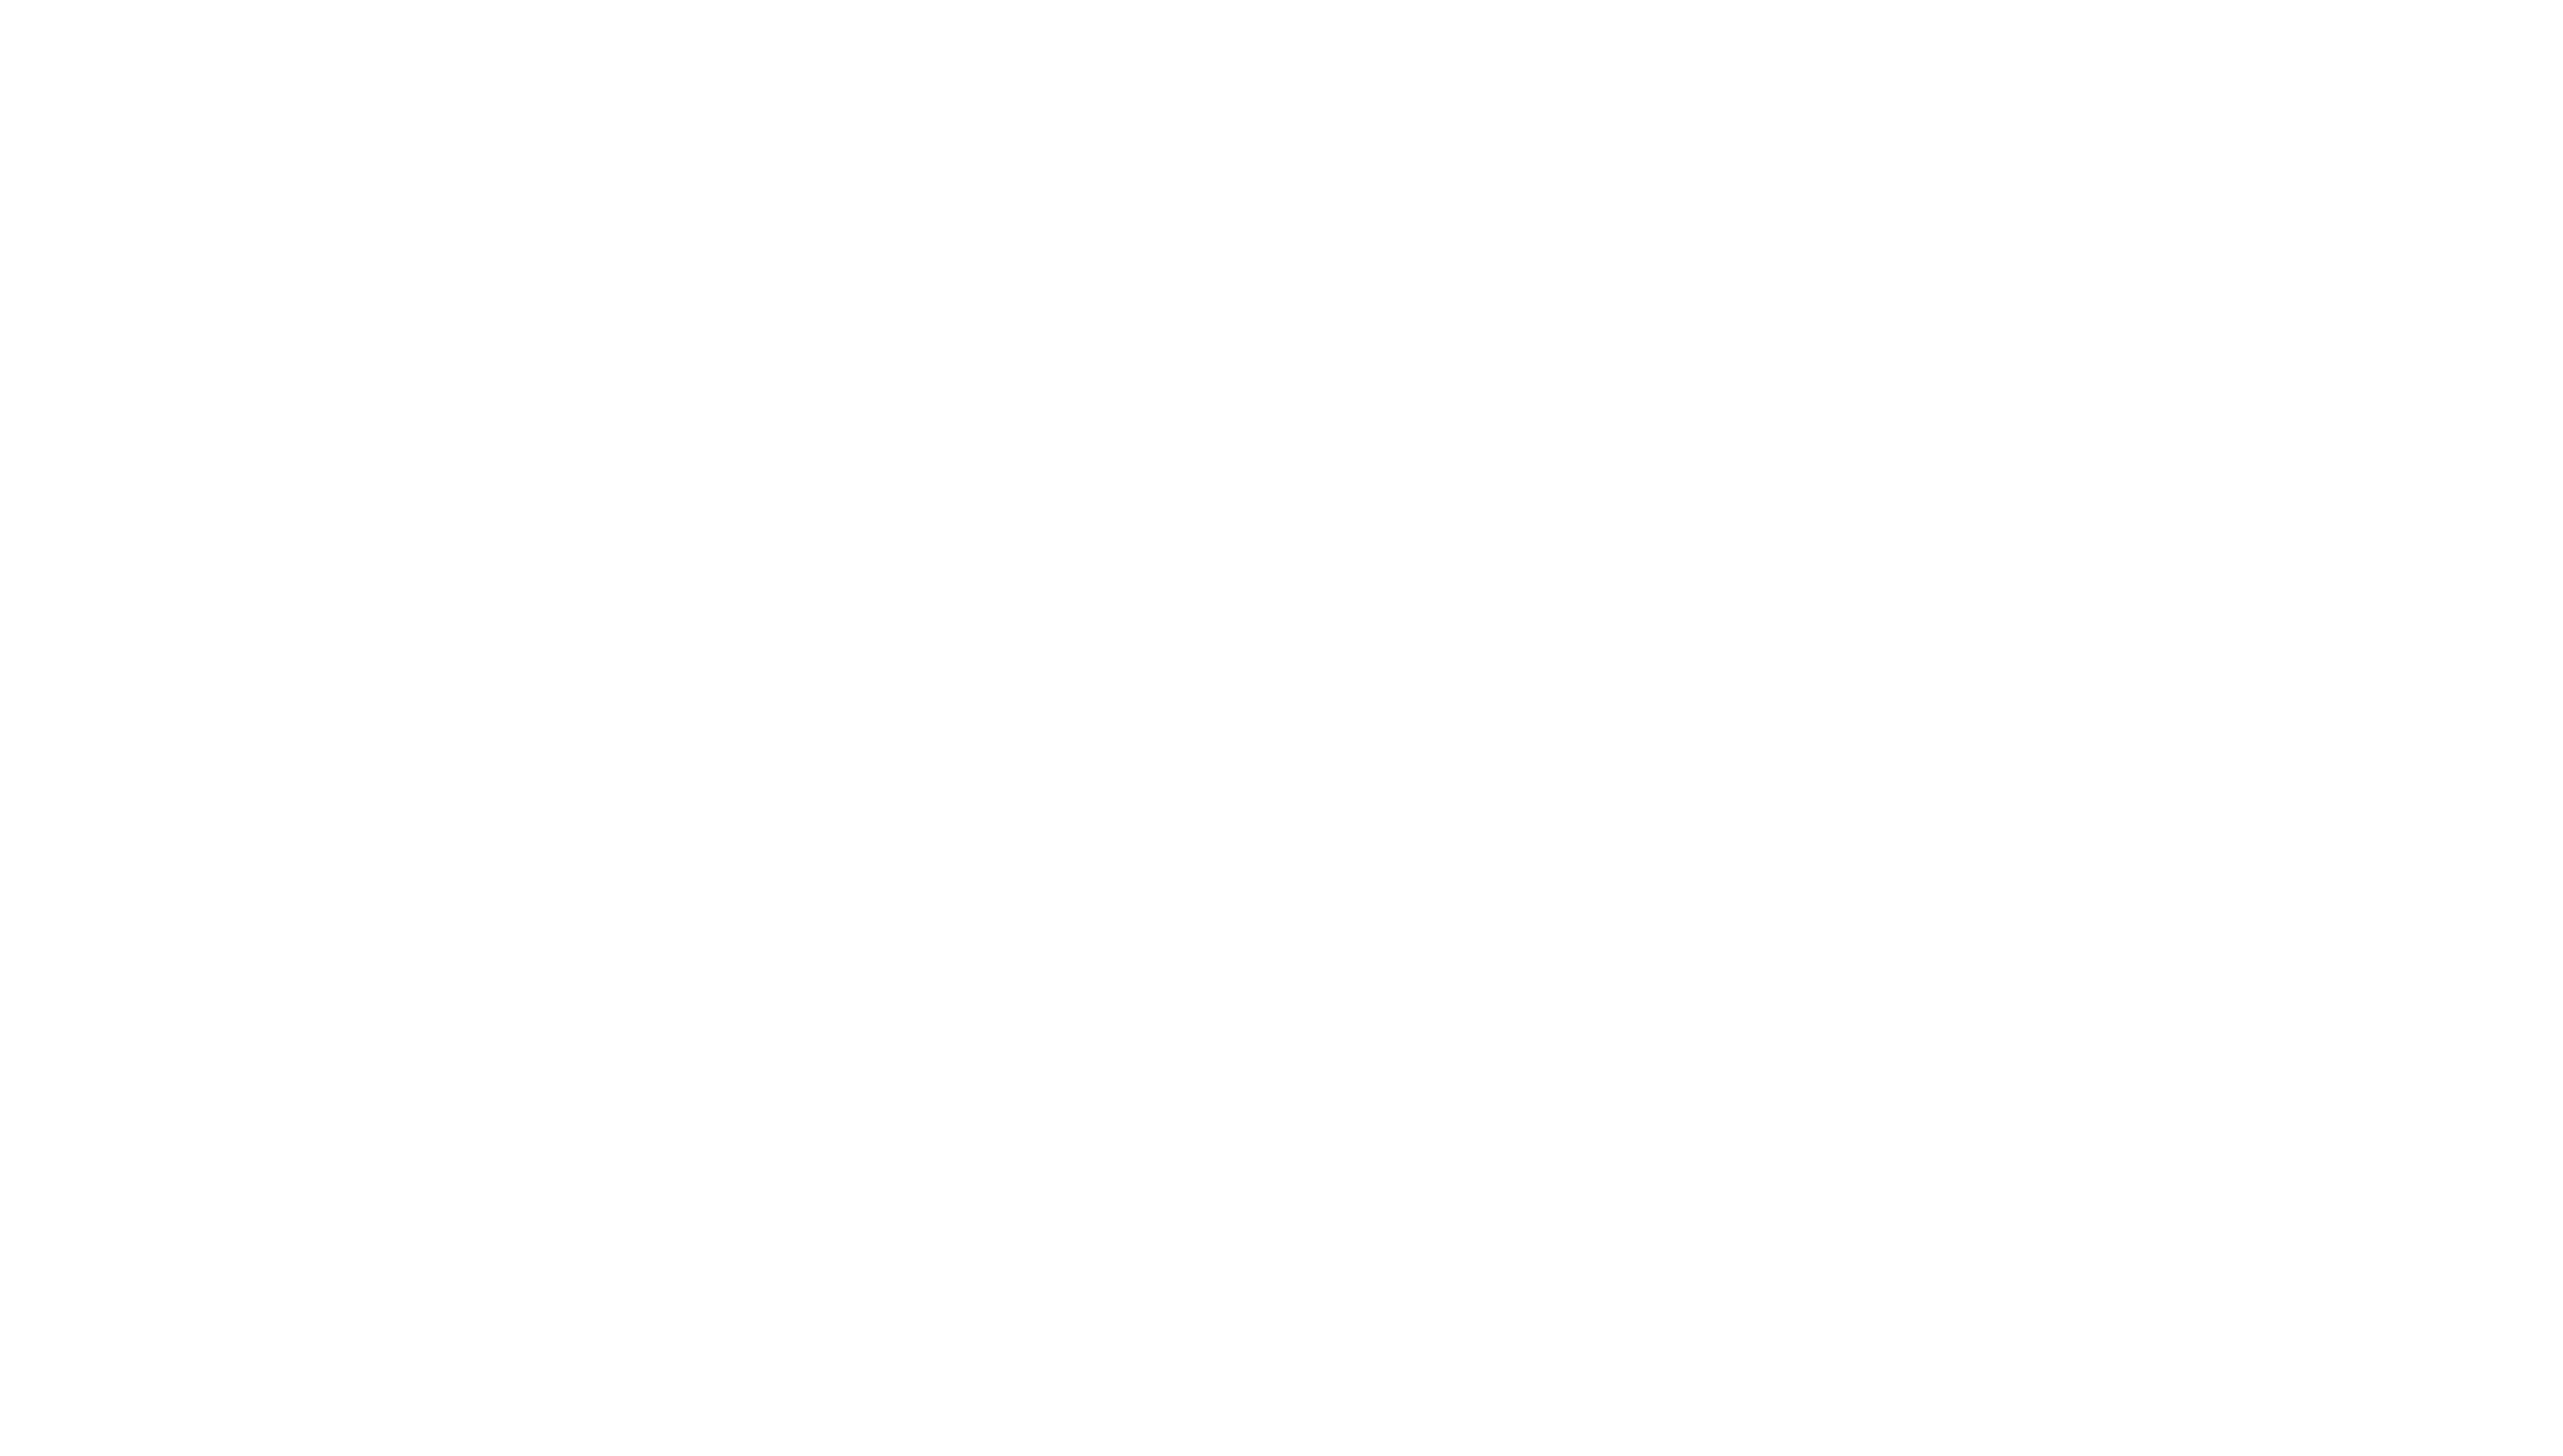 Biblio(r)Evolució: Rempensem els usos de la biblioteca escolar busca 30 centres educatius que vulguin definir i cocrear usos innovadors que integrin la biblioteca escolar com un agent que respon als reptes actuals de l'educació.